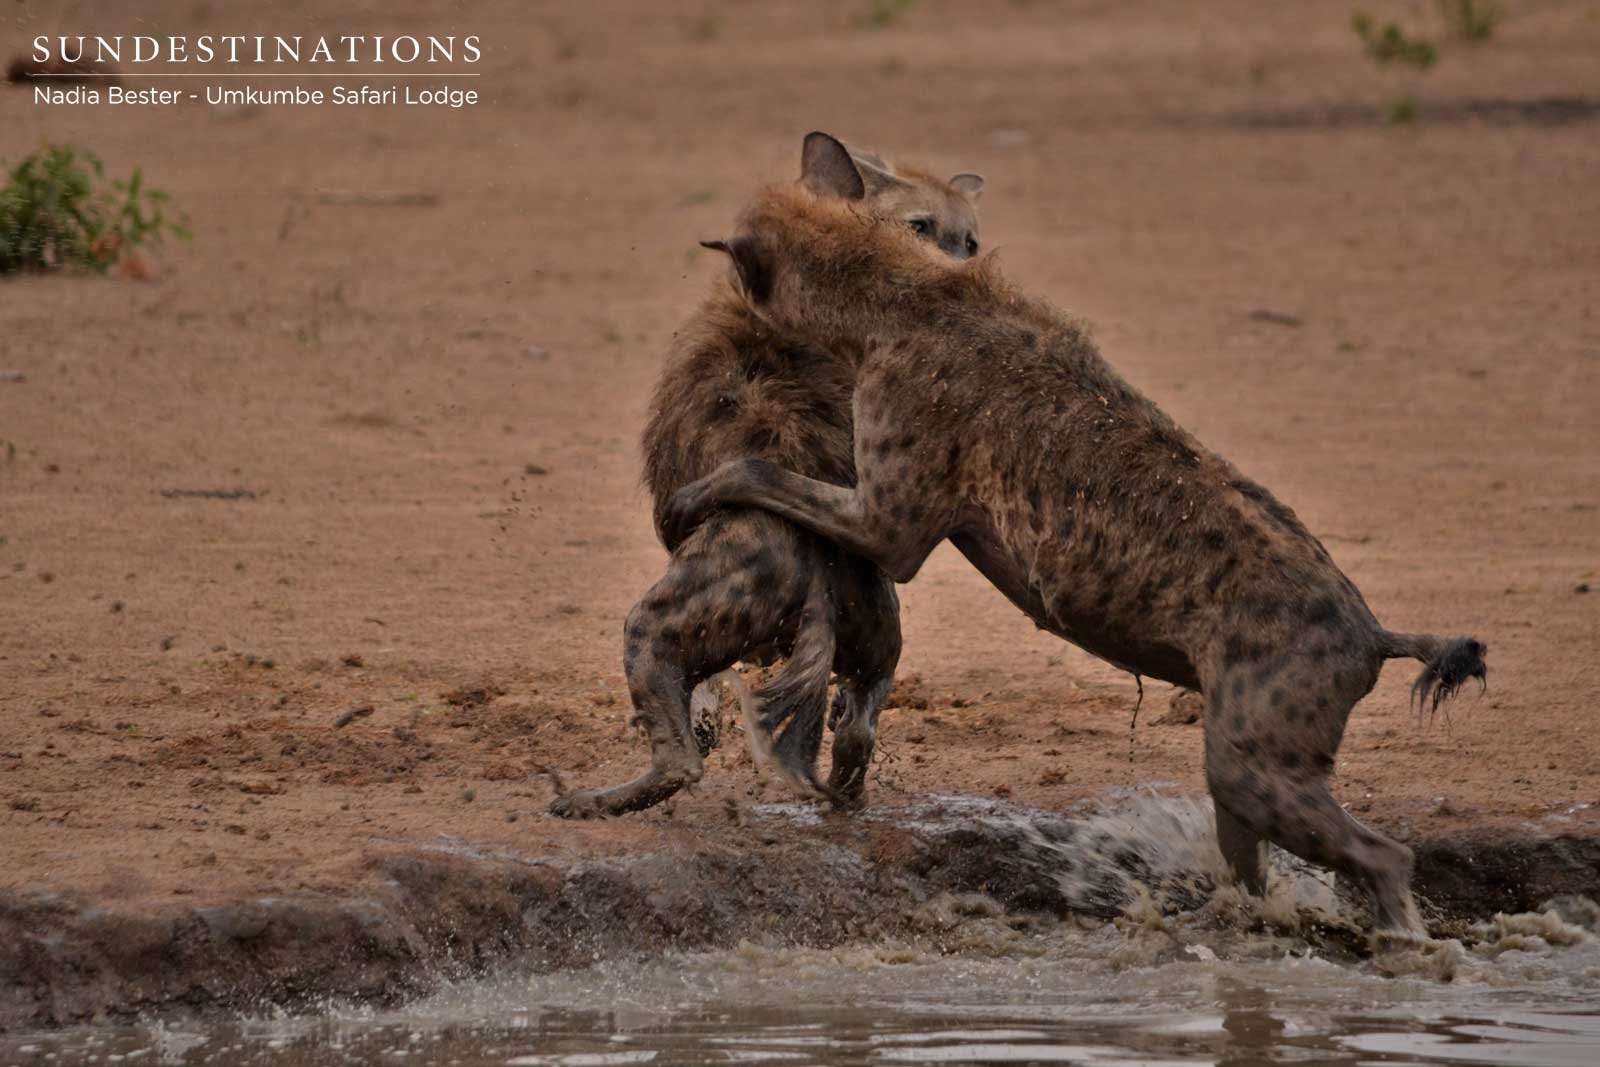 Hyena at Play in the Waterhole